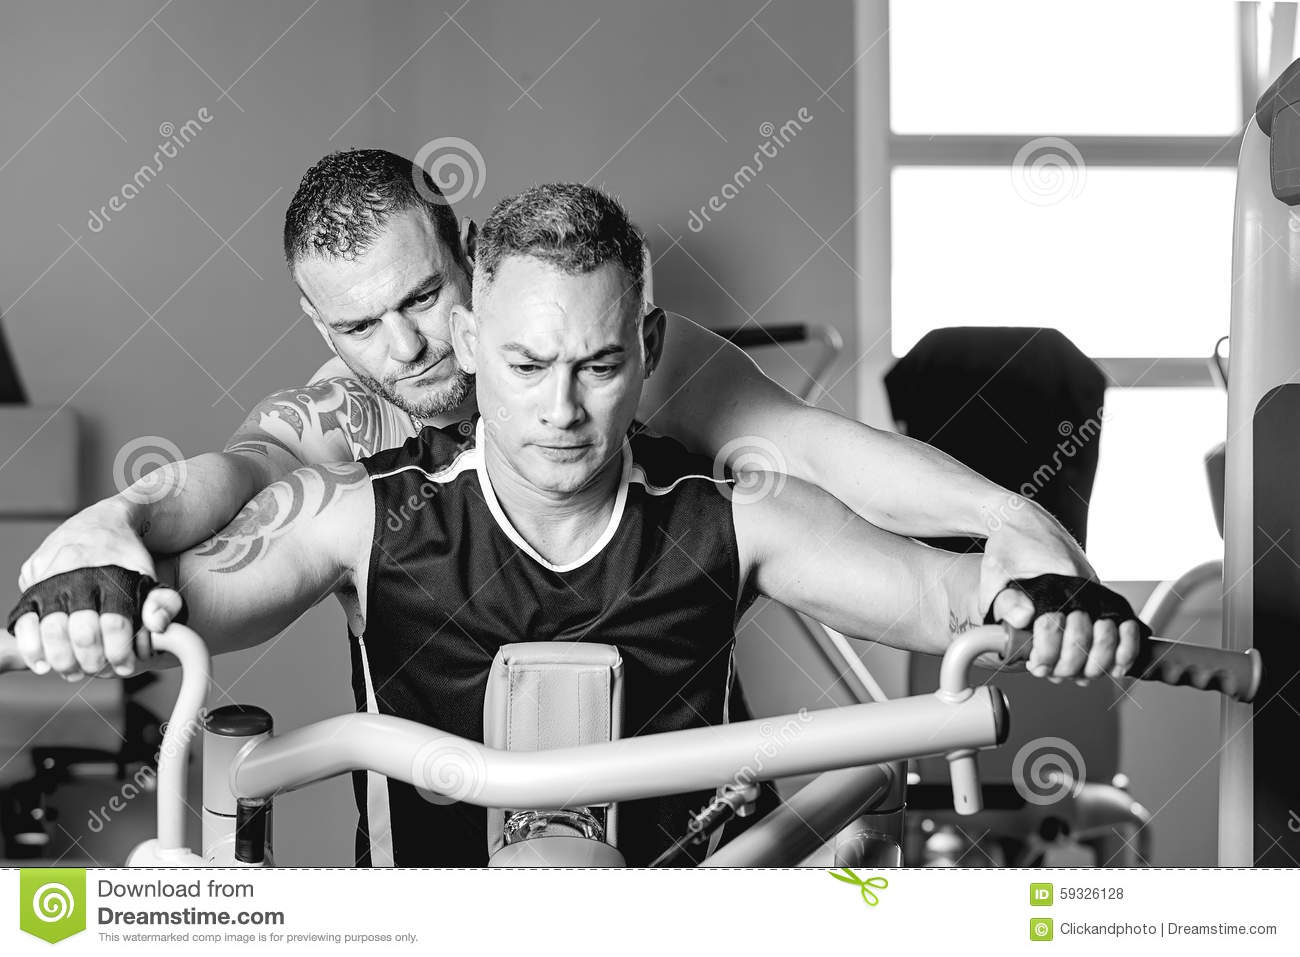 Download Personal Trainer Helping Man With Shoulder Exercise Stock Photo